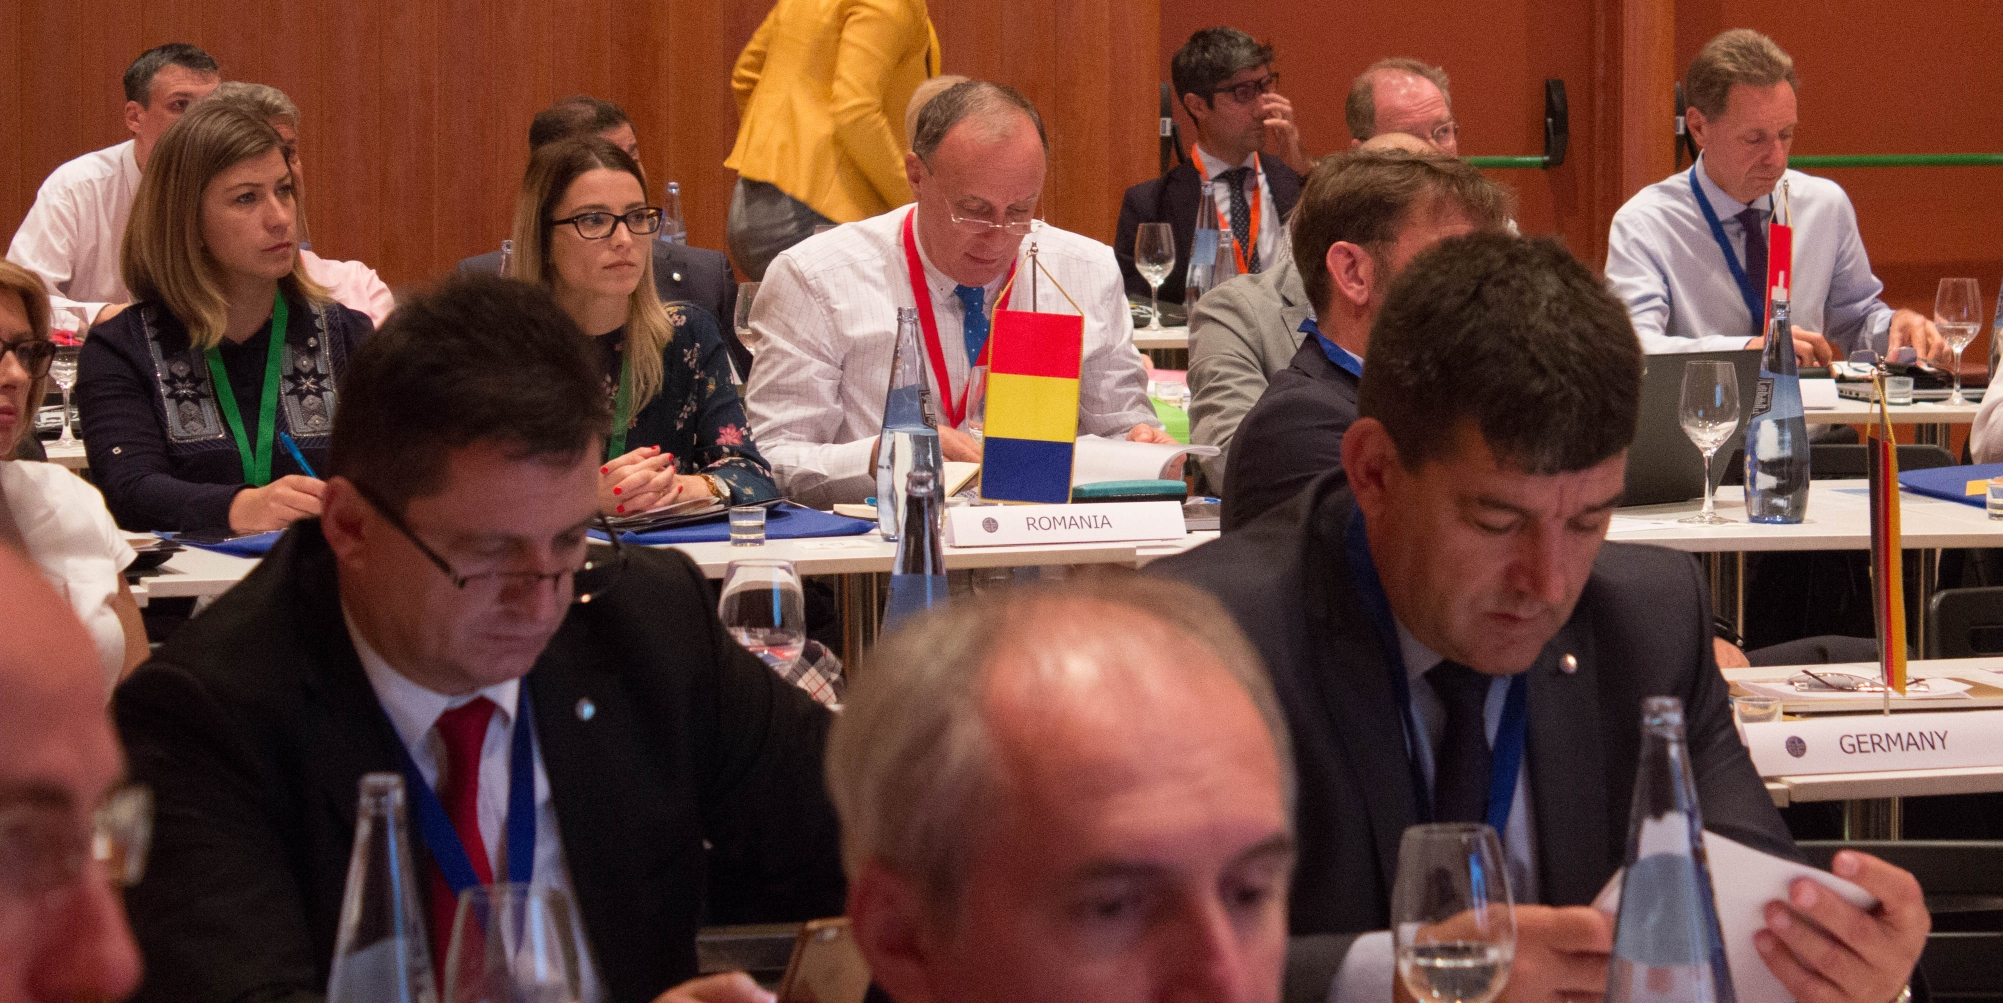 clge-general-assembly-barcelona-2018_44329726595_o.jpg